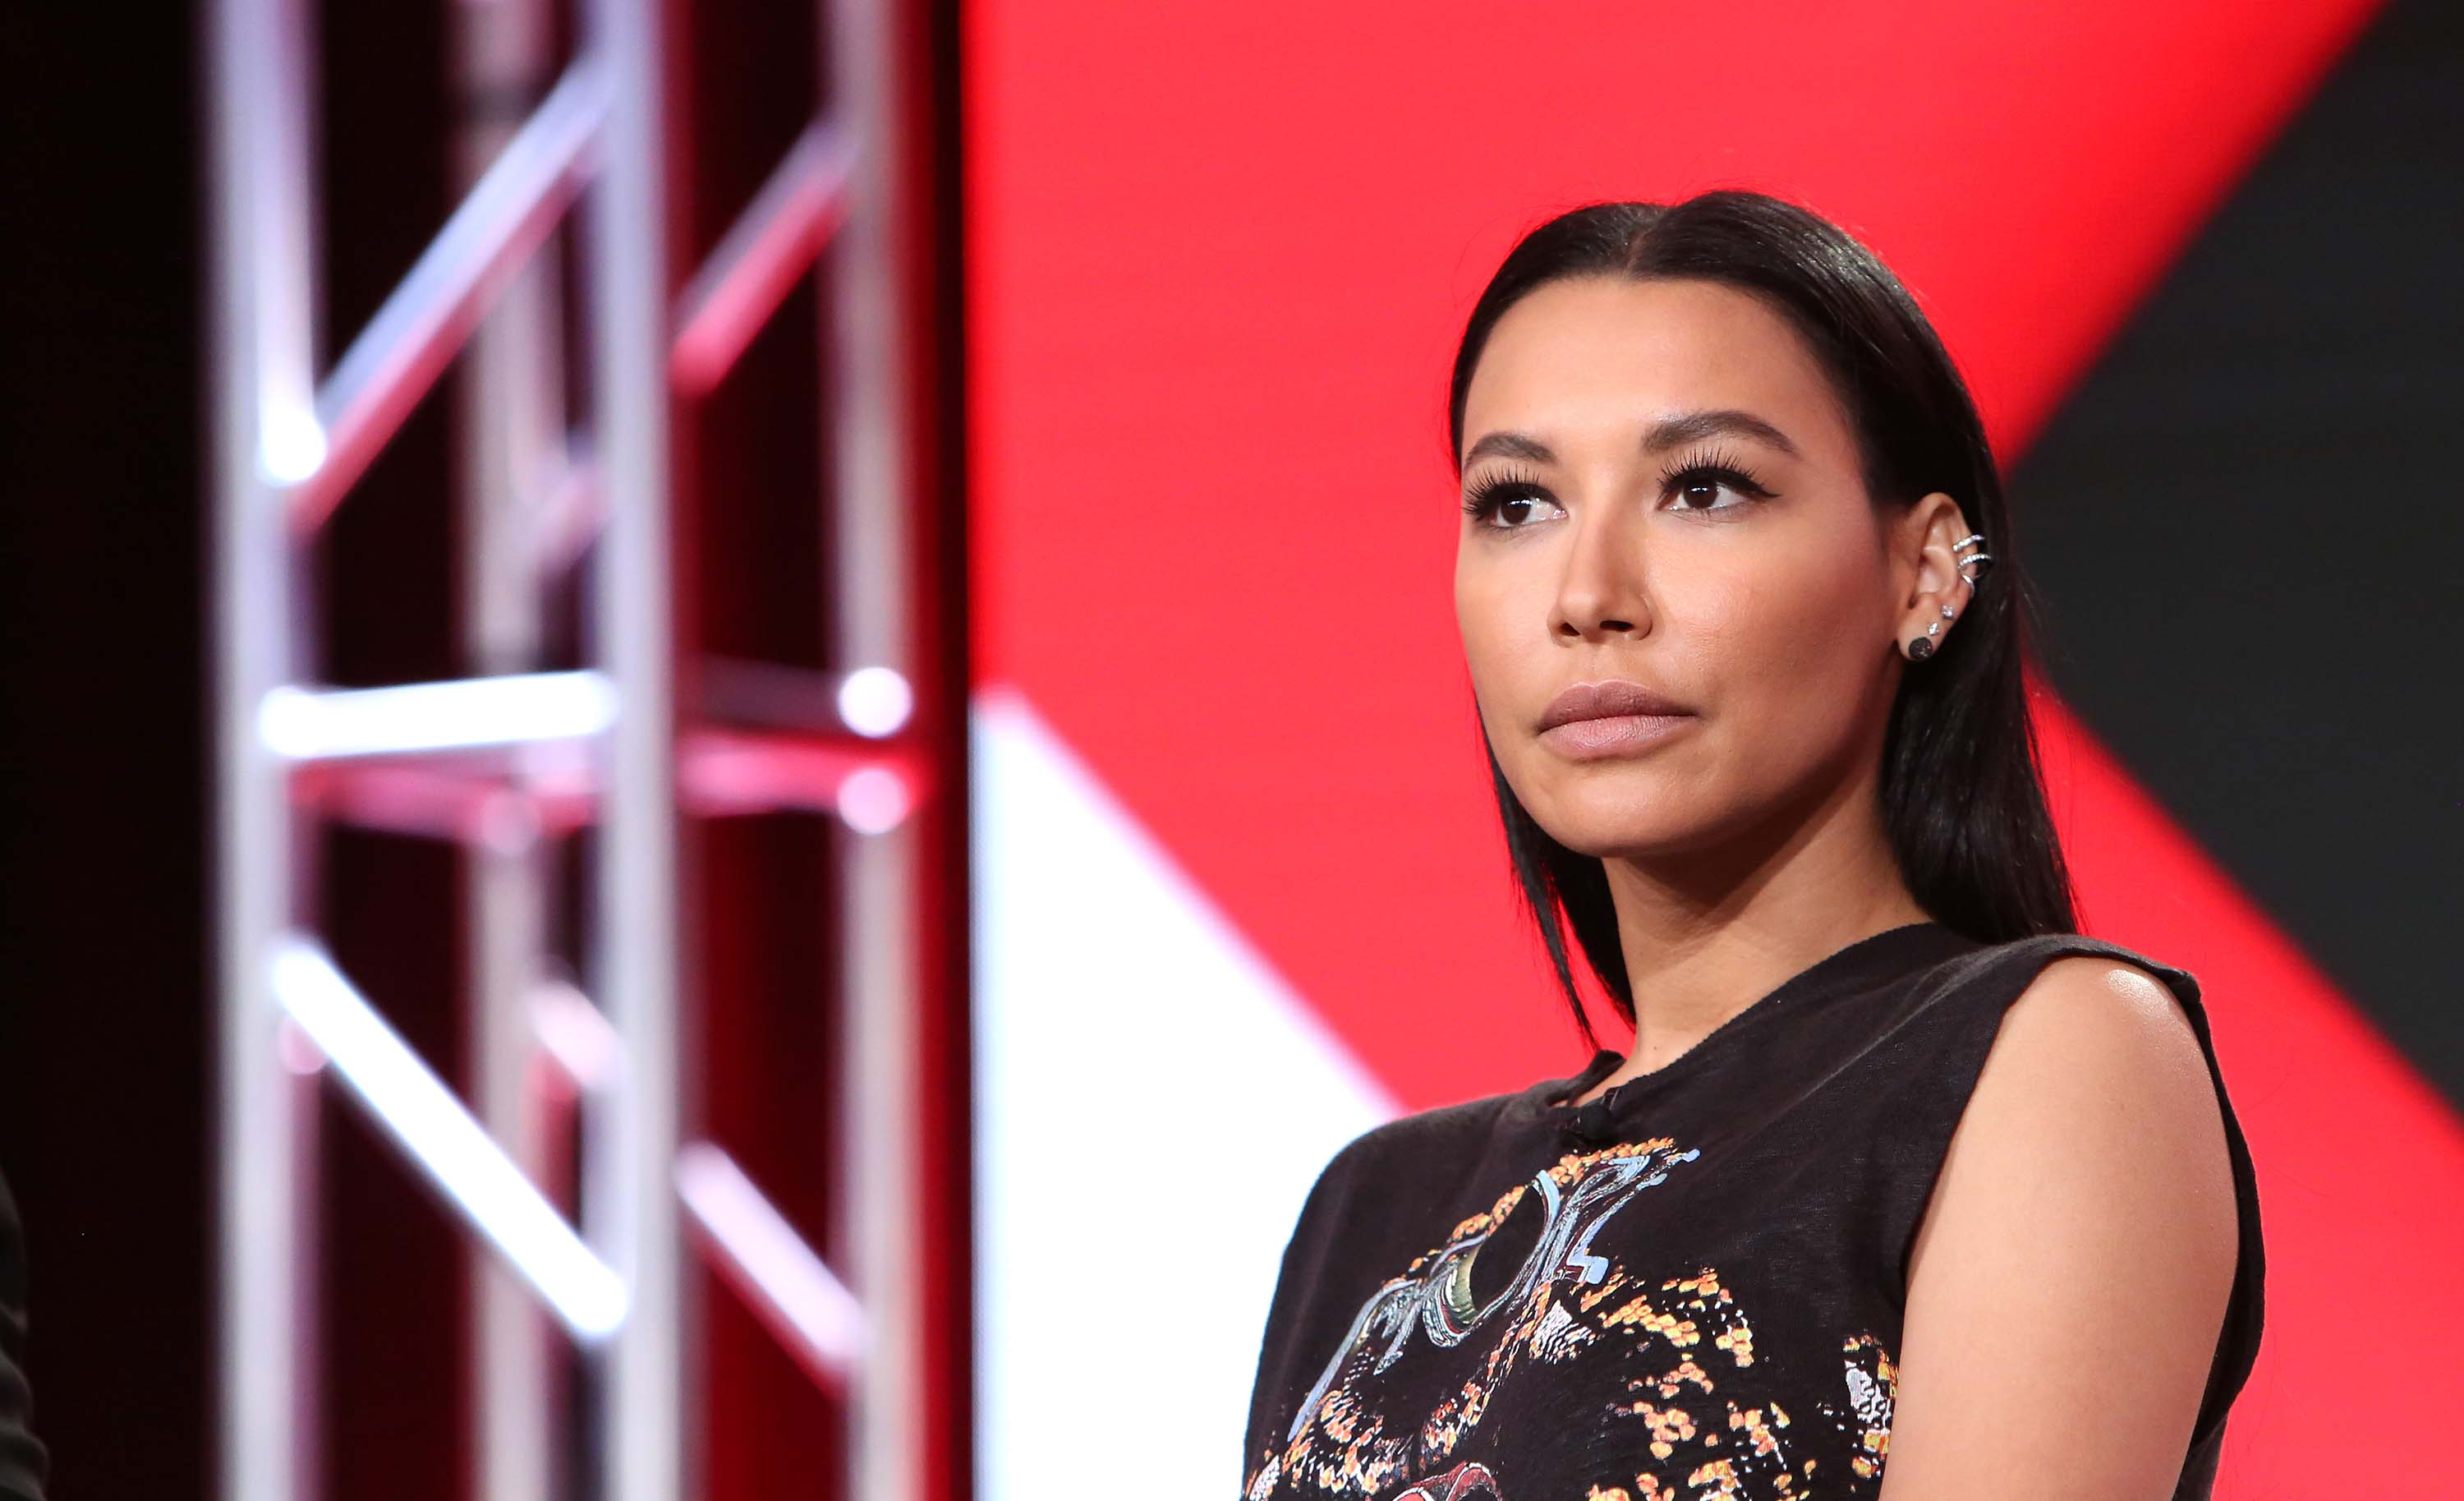 'Glee' actress Naya Rivera is presumed dead after disappearing at a lake in California, authorities say